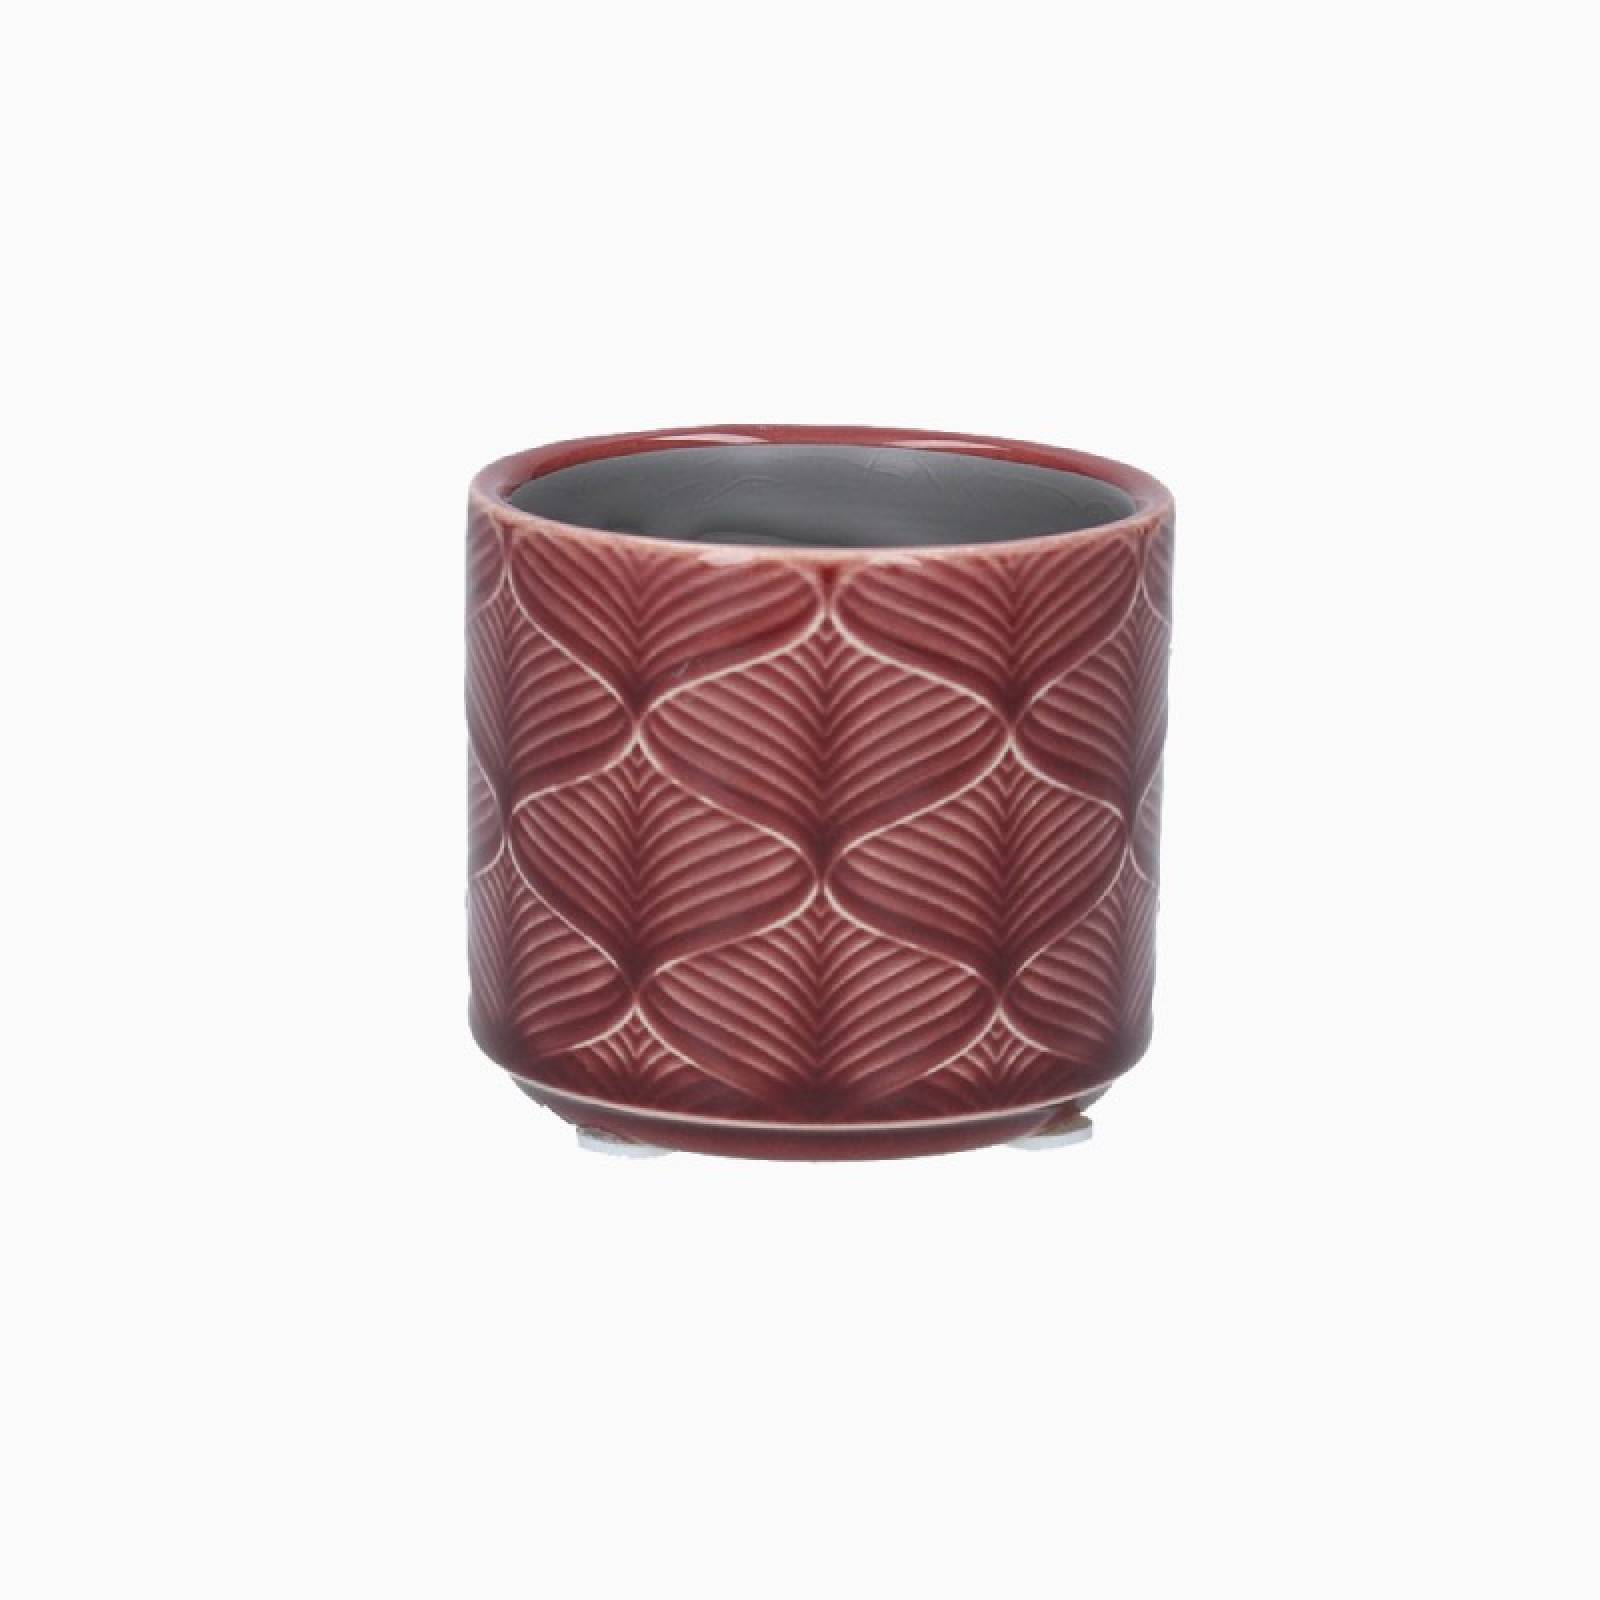 Mini Wavy Ceramic Flower Pot Cover In Berry thumbnails